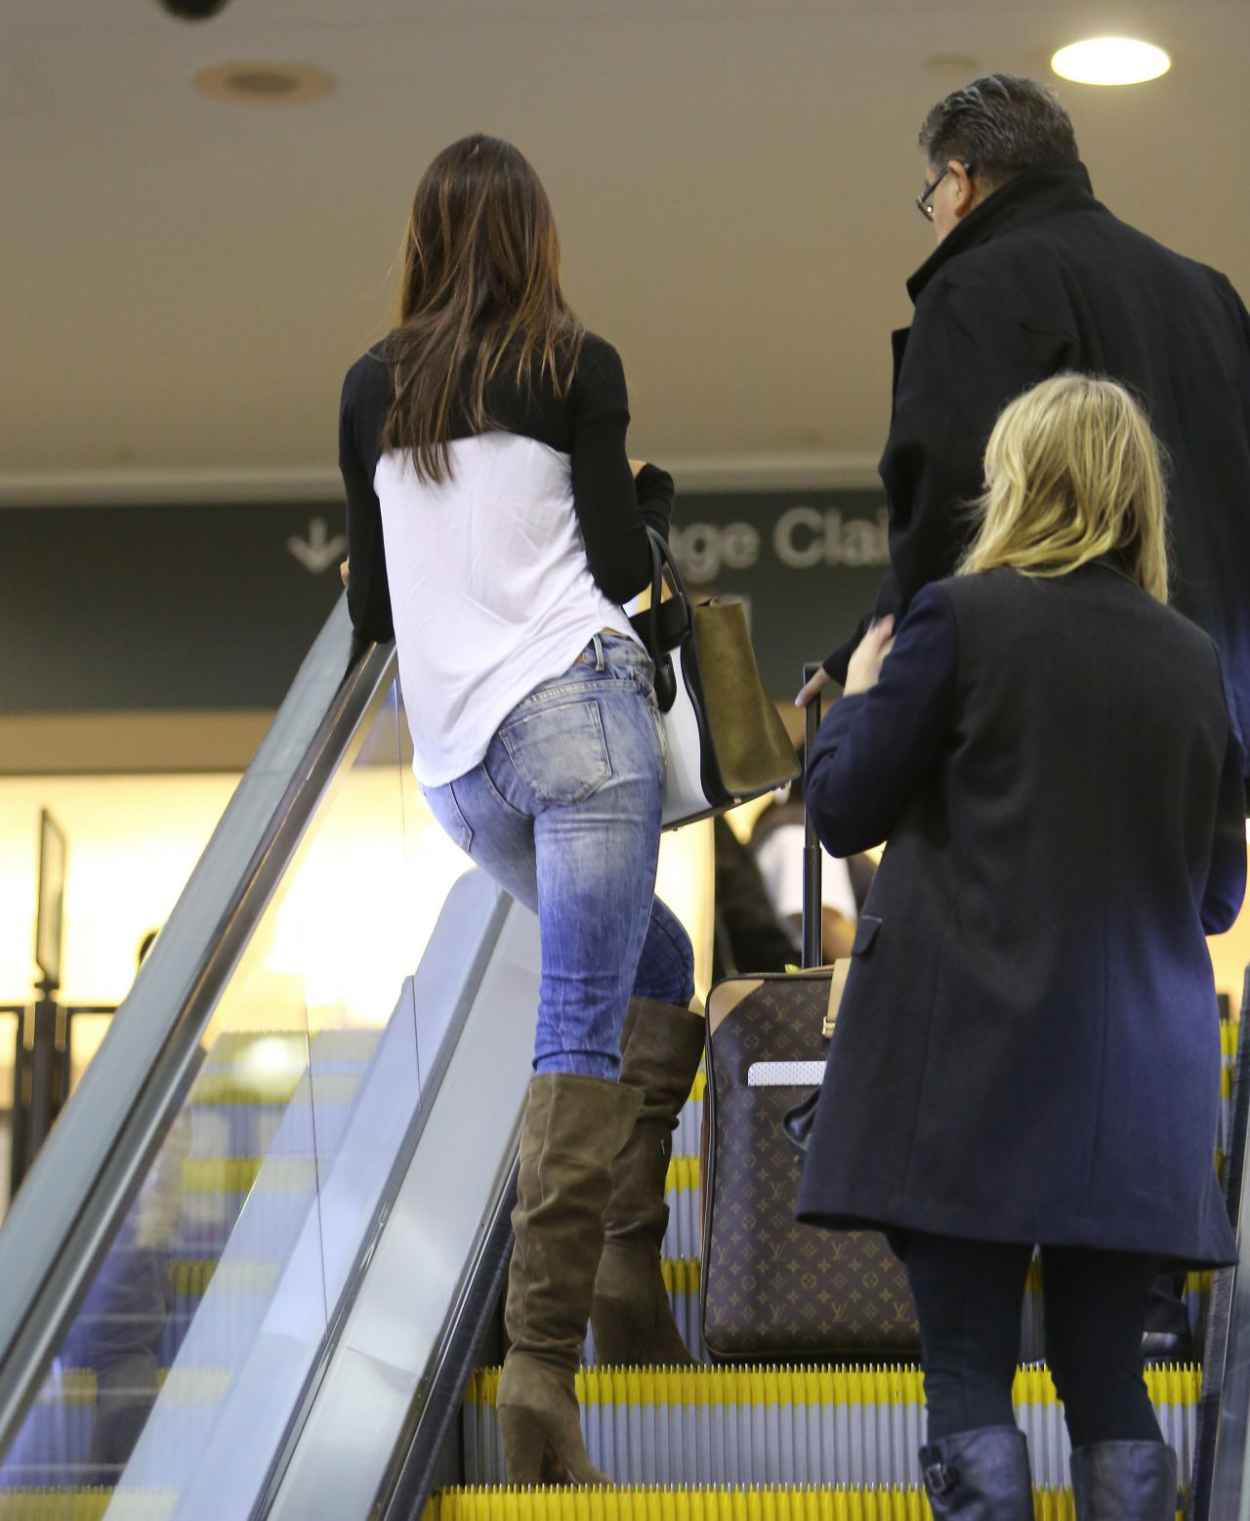 Kendall Jenner in Jeans at LAX Airport - November 2015-5